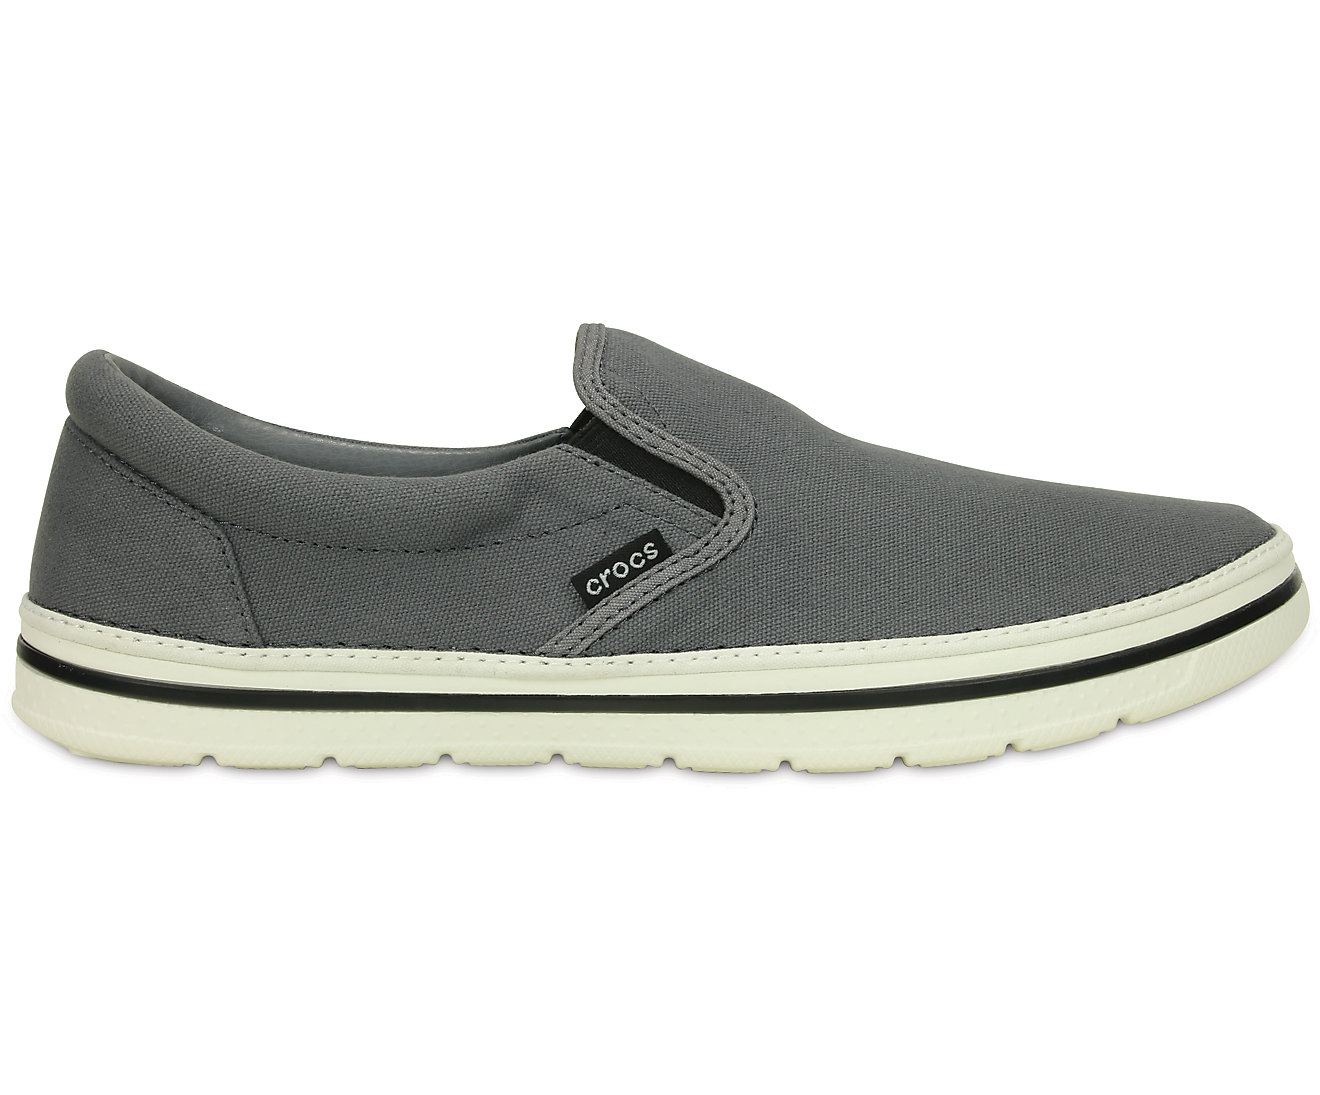 Men's<br /><br /> Crocs Norlin Slip-on